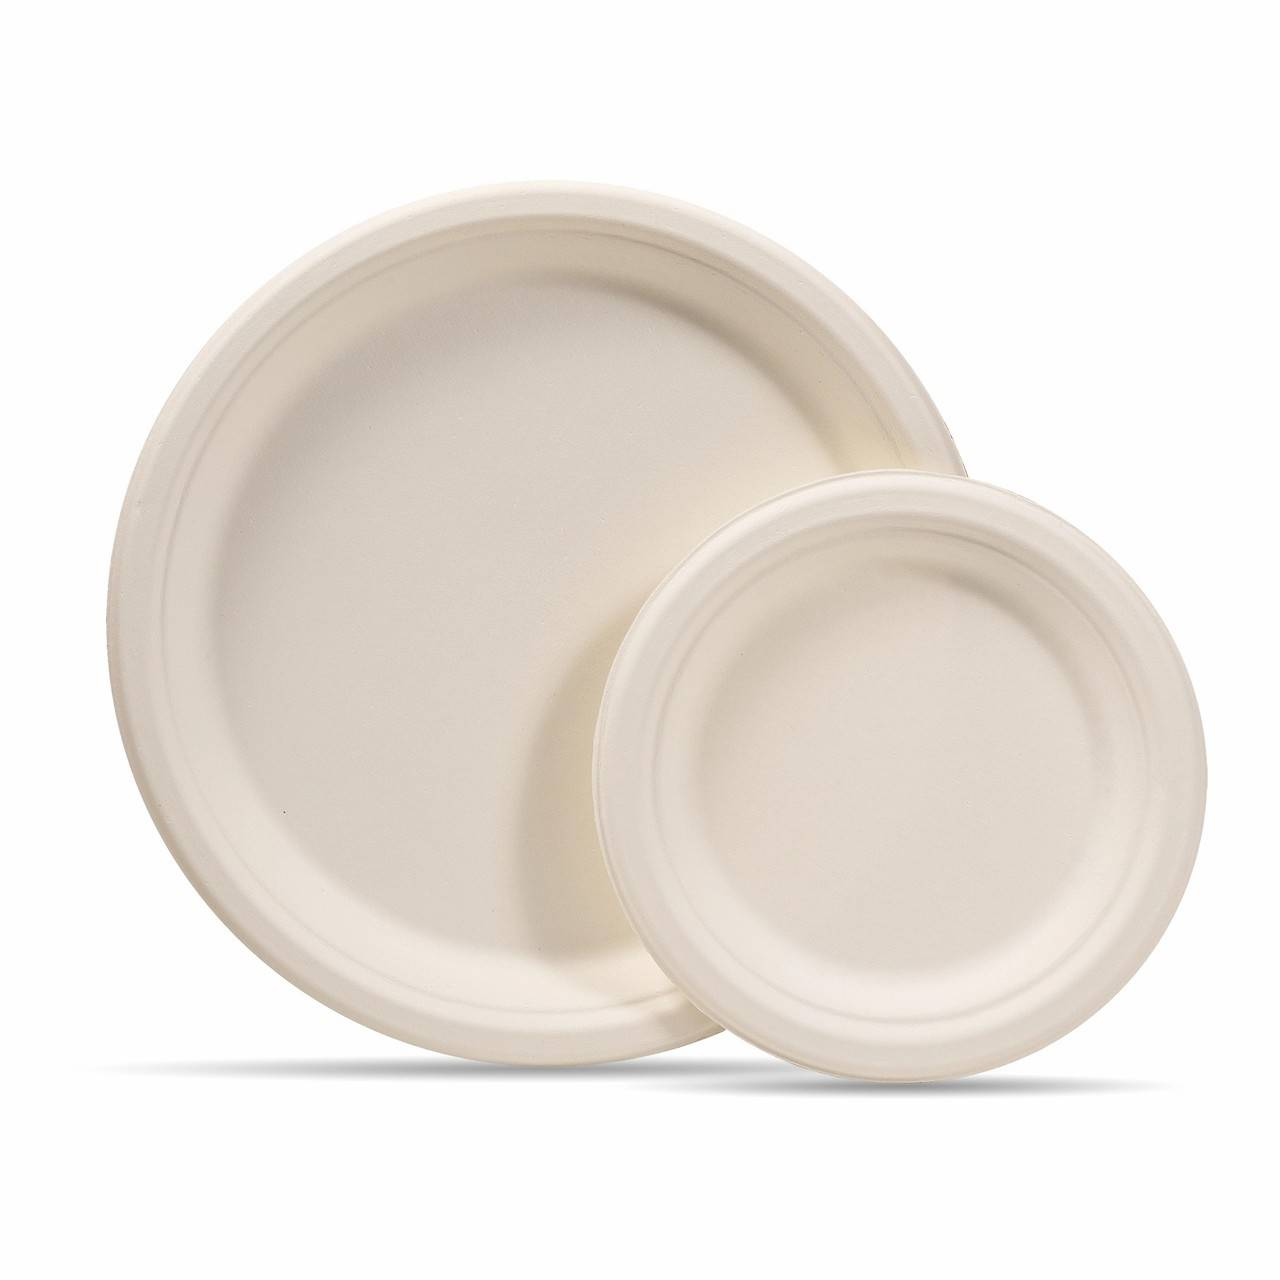 100% Biodegradable Sugarcane Pulp Bagasse Plate Featured Image